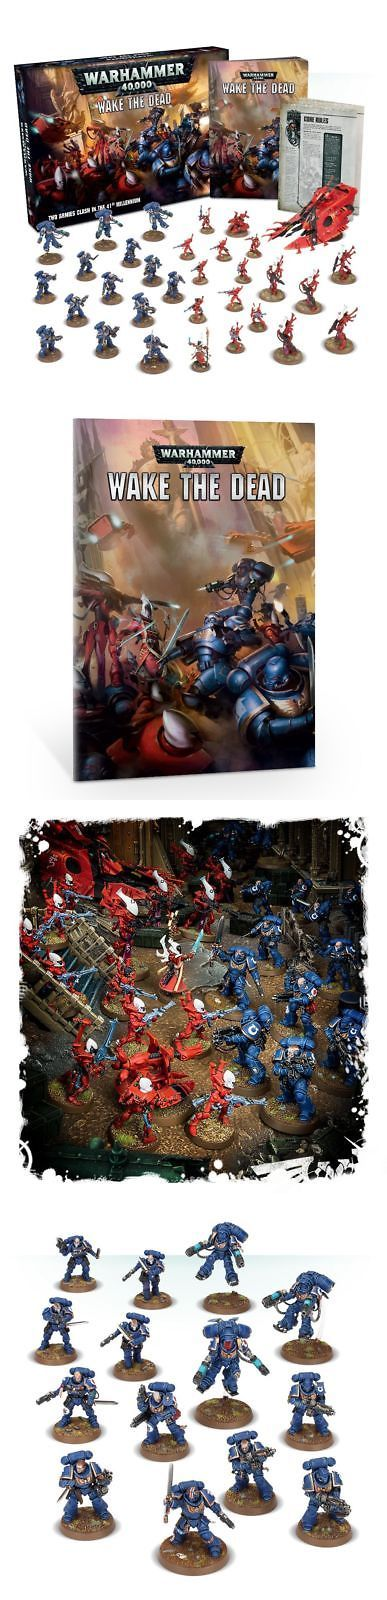 40k Starter Sets 183472 Warhammer 40k Wake The Dead Box